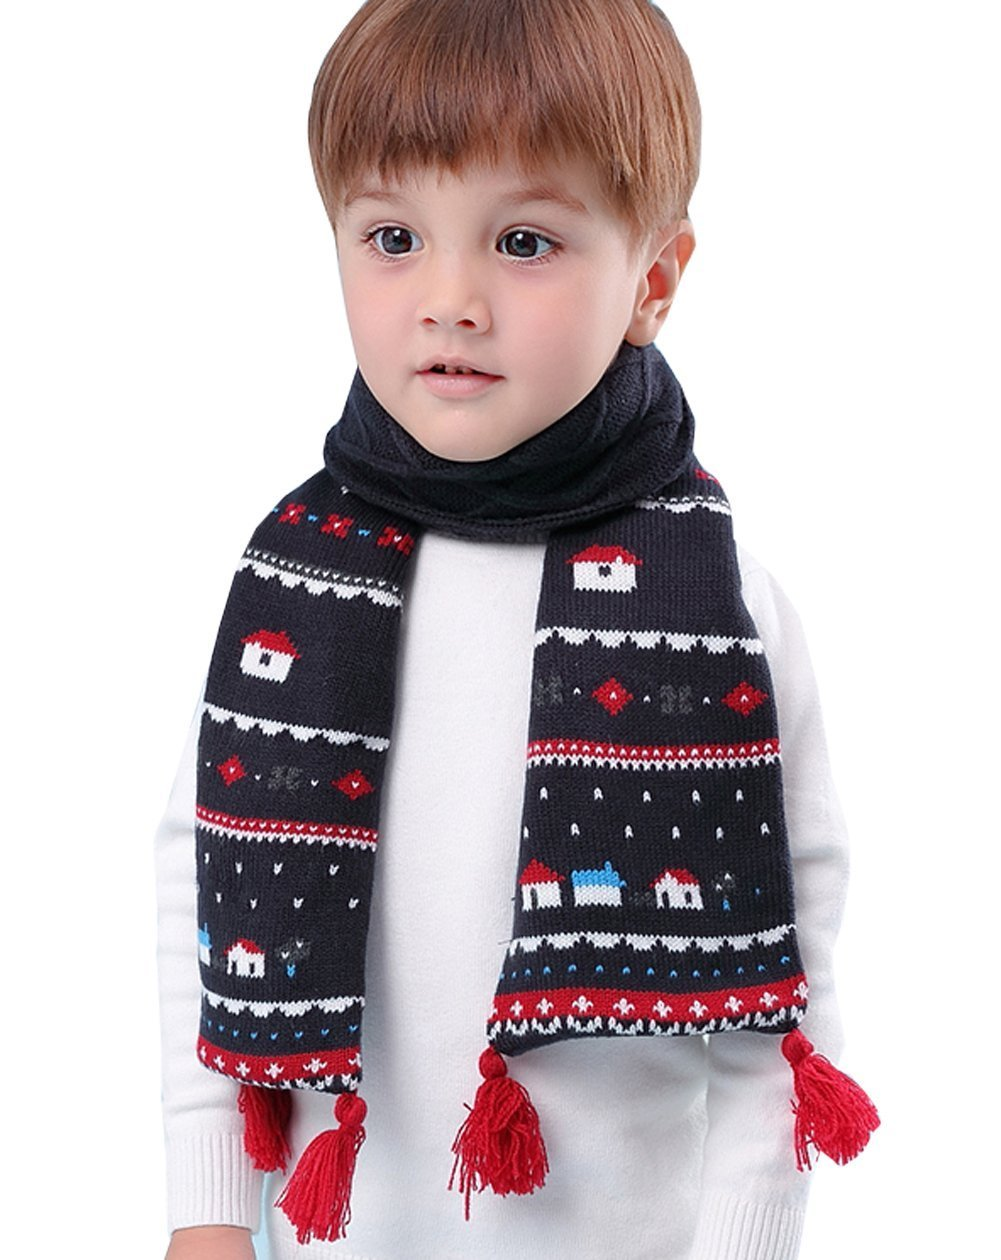 Kids Winter Fashion Warm Long Knit Scarf Fleece Chunky Christmas Scarf Boys Girls